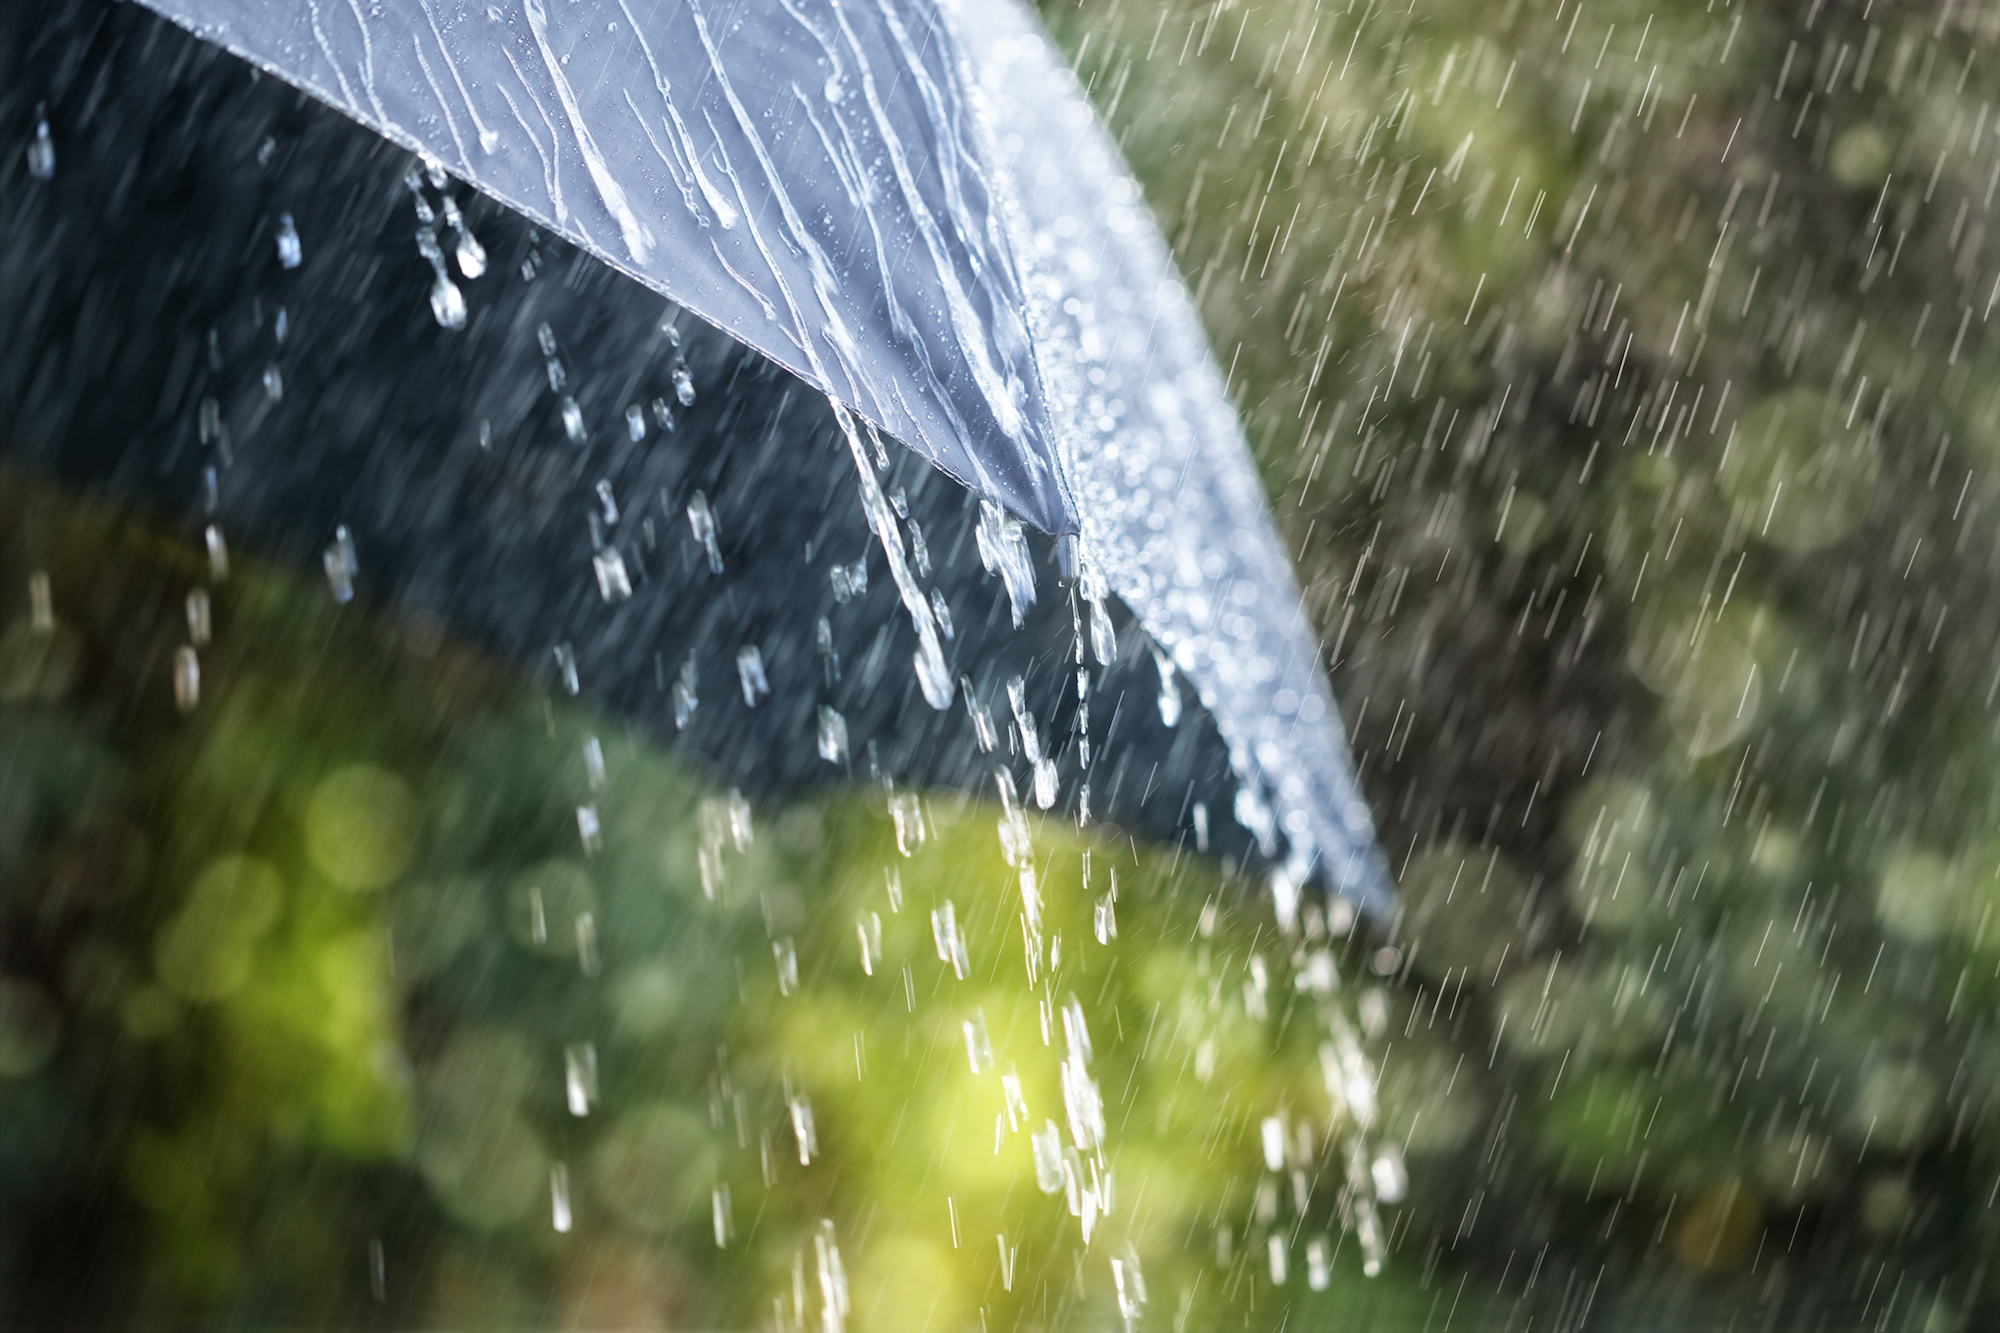 Heavy rain alert issued for Innisfil and area - BarrieToday